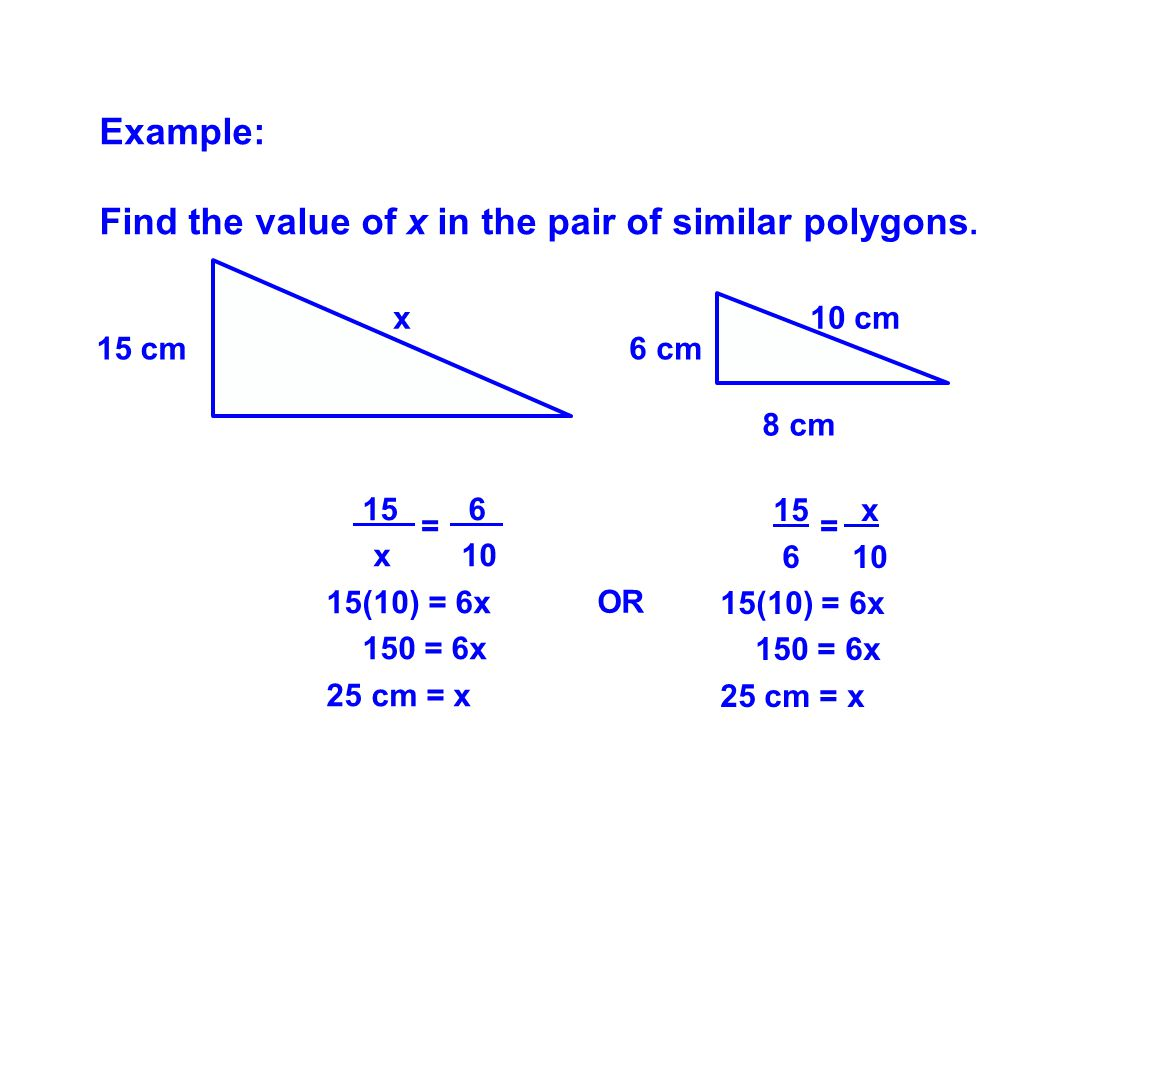 Find the value of x in the pair of similar polygons.